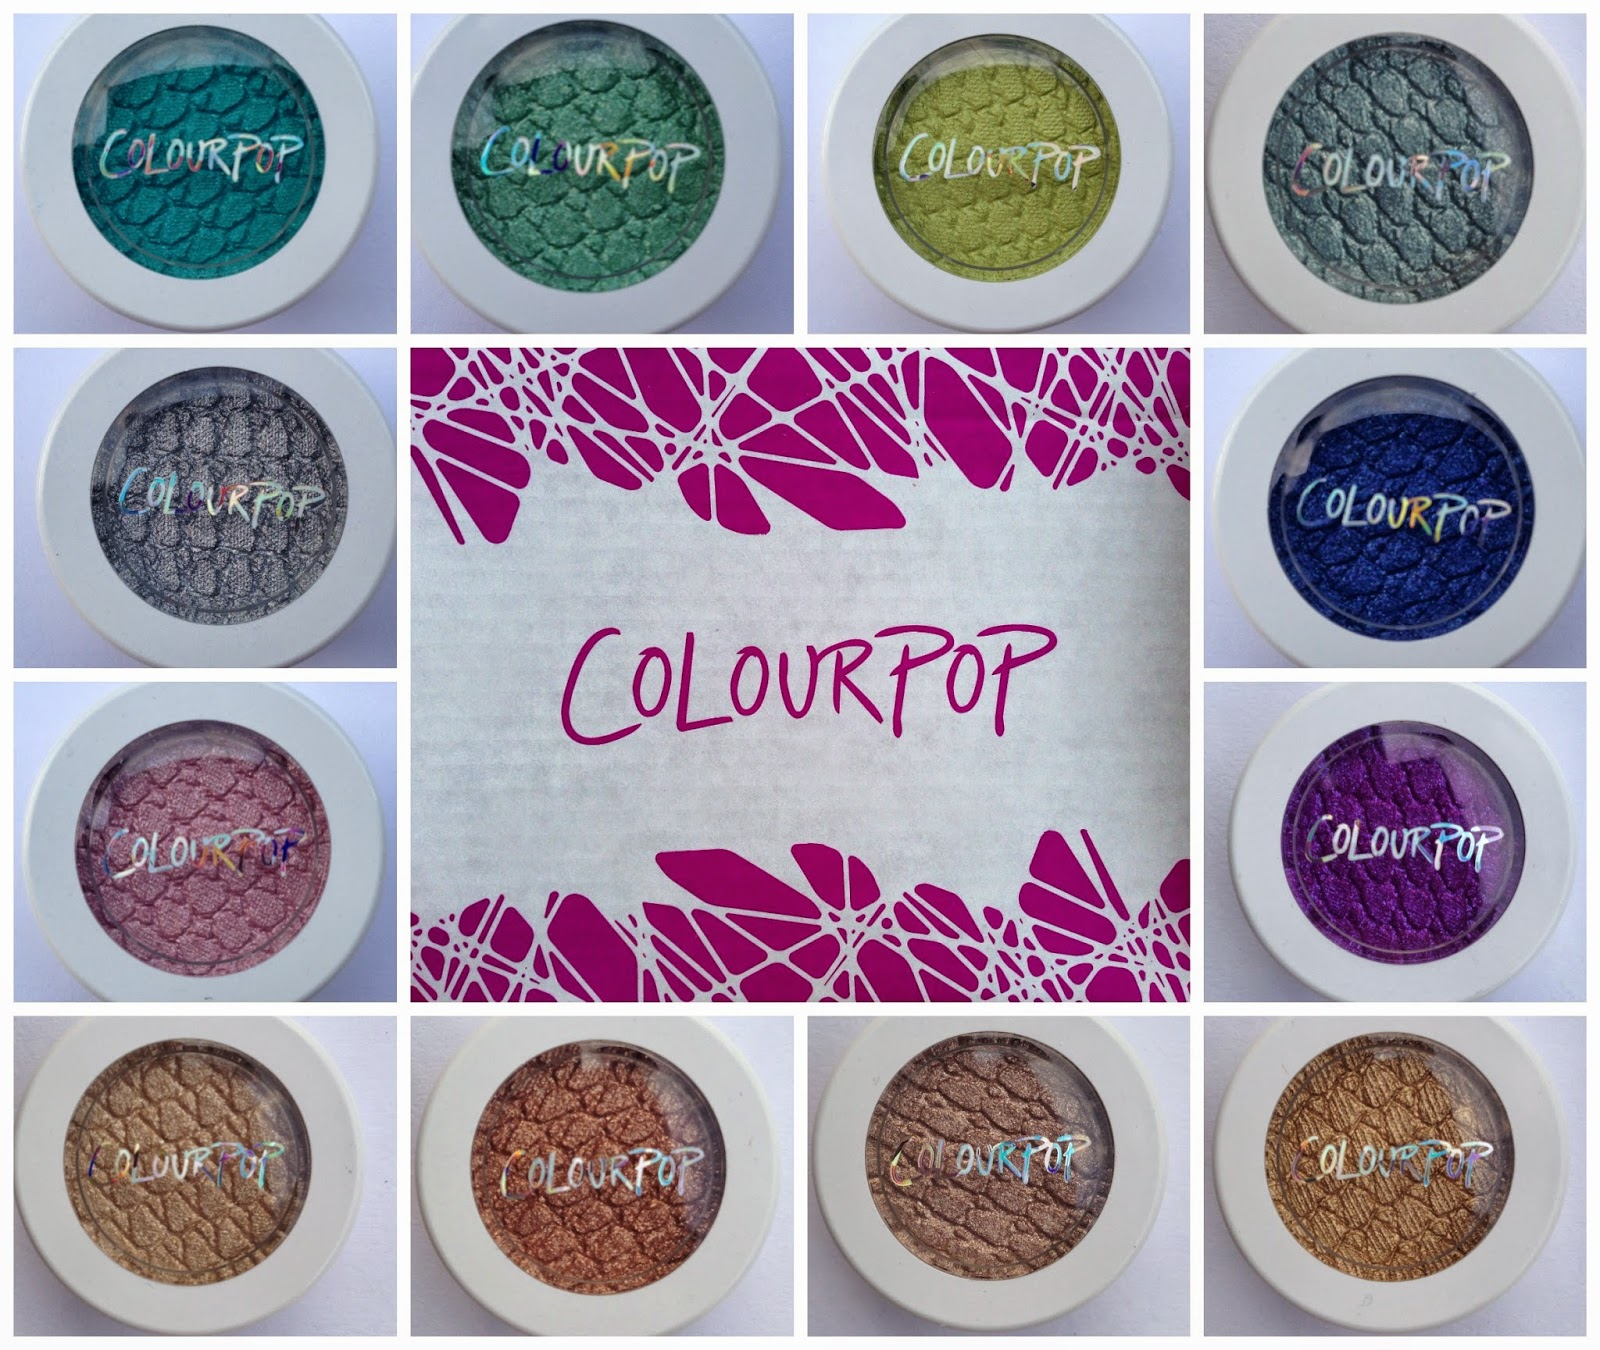 colourpop_collage.jpg